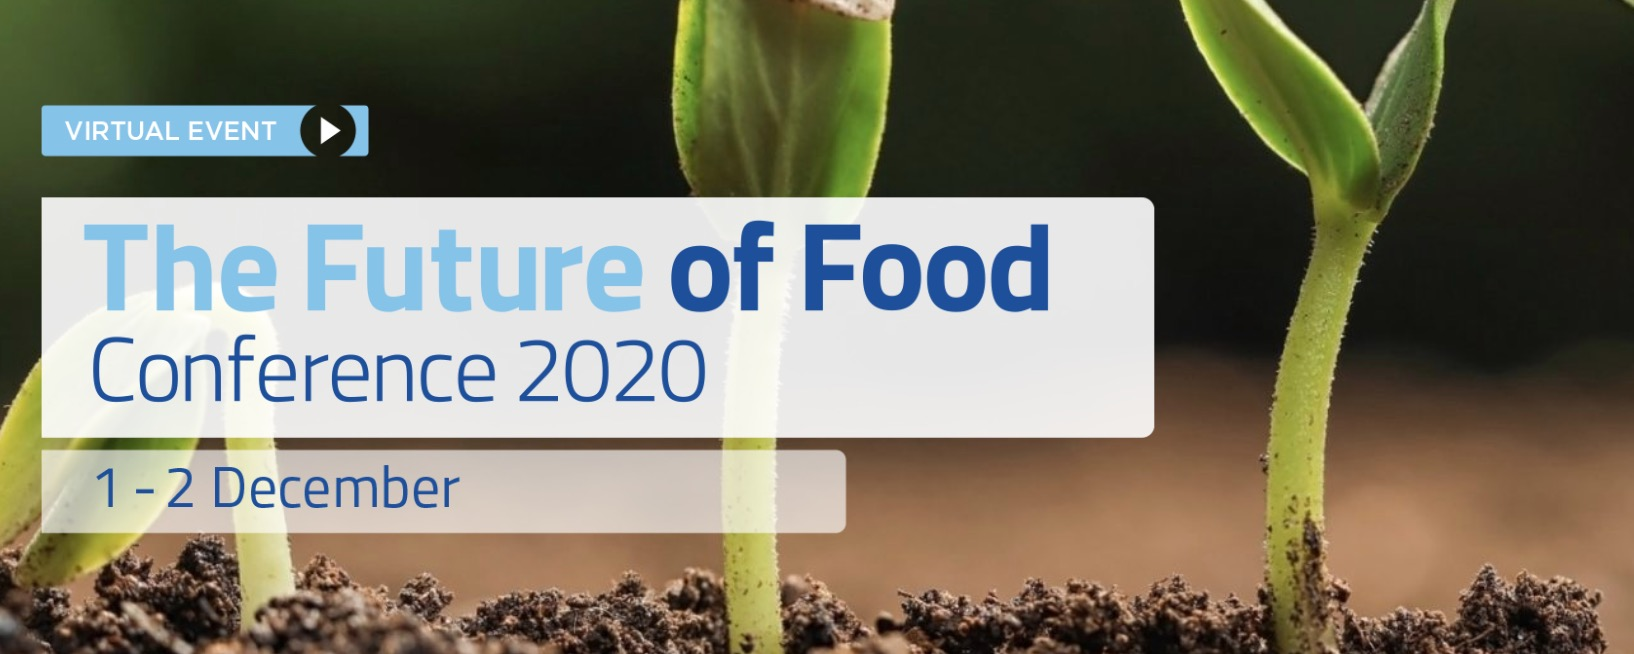 EIT The Future of Food Conference 2020 - Virtual Event